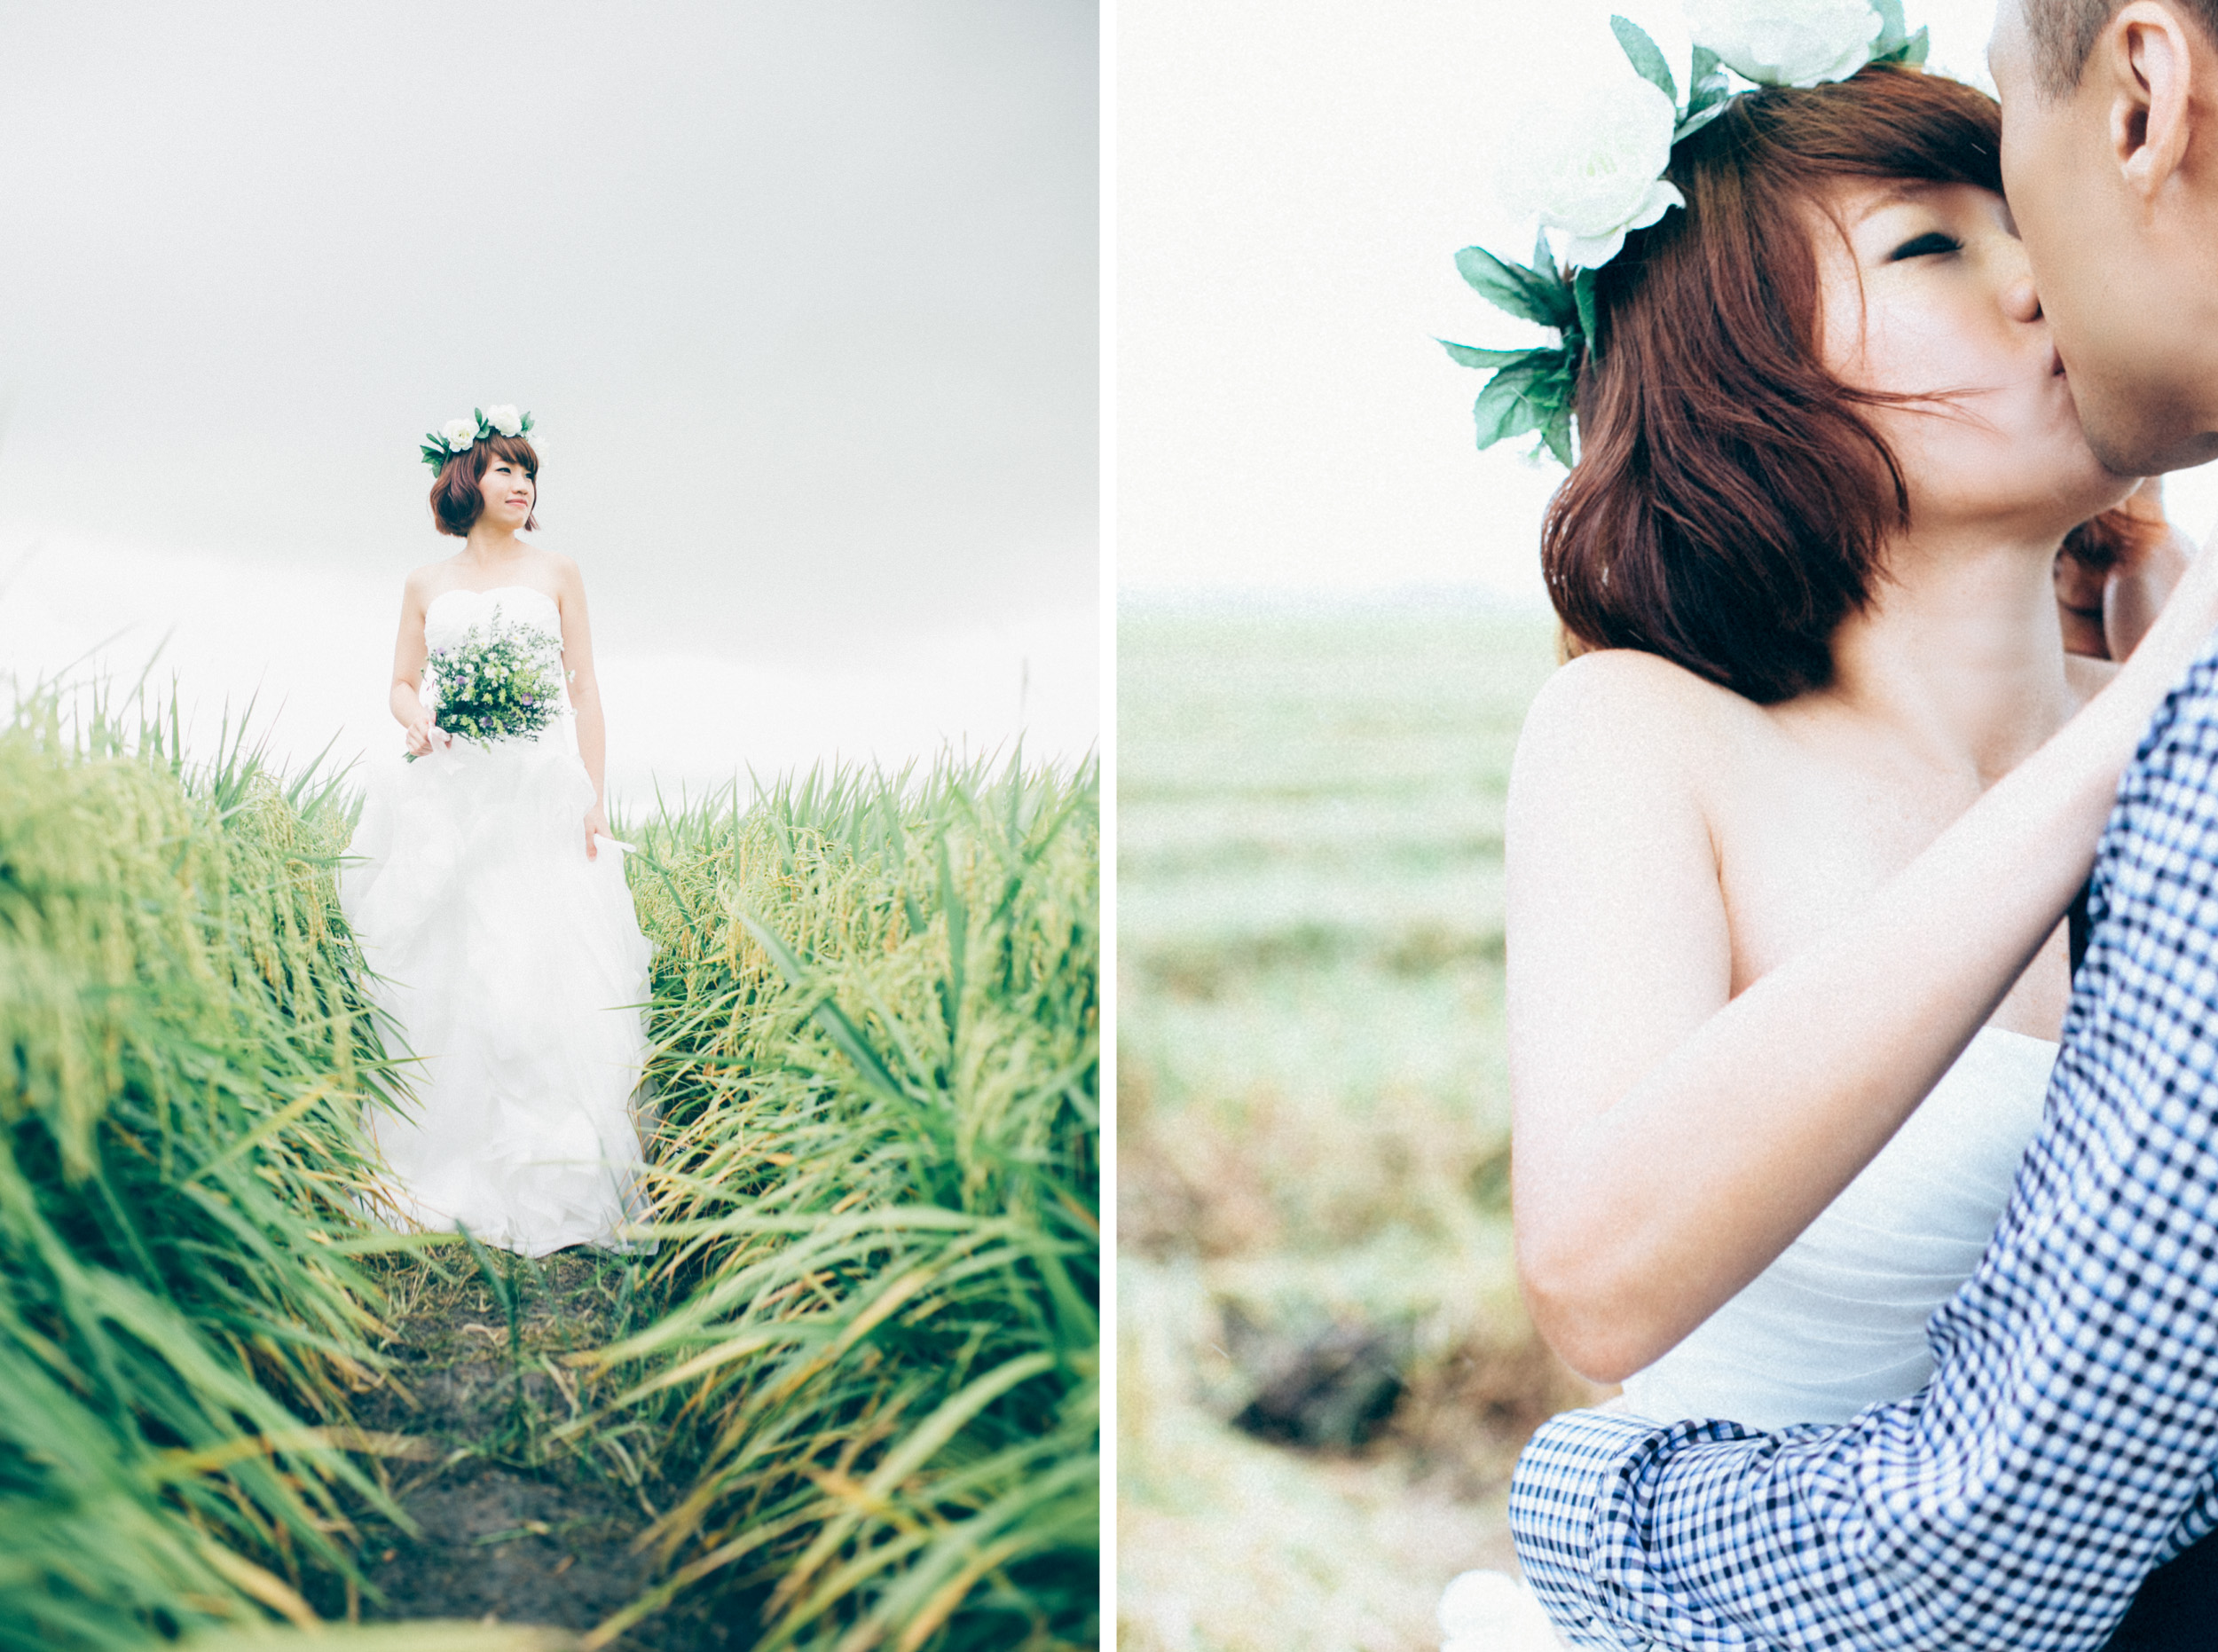 19-hellojanelee-singapore-malaysia-wedding-photographer-prewedding-carrie-sekinchan